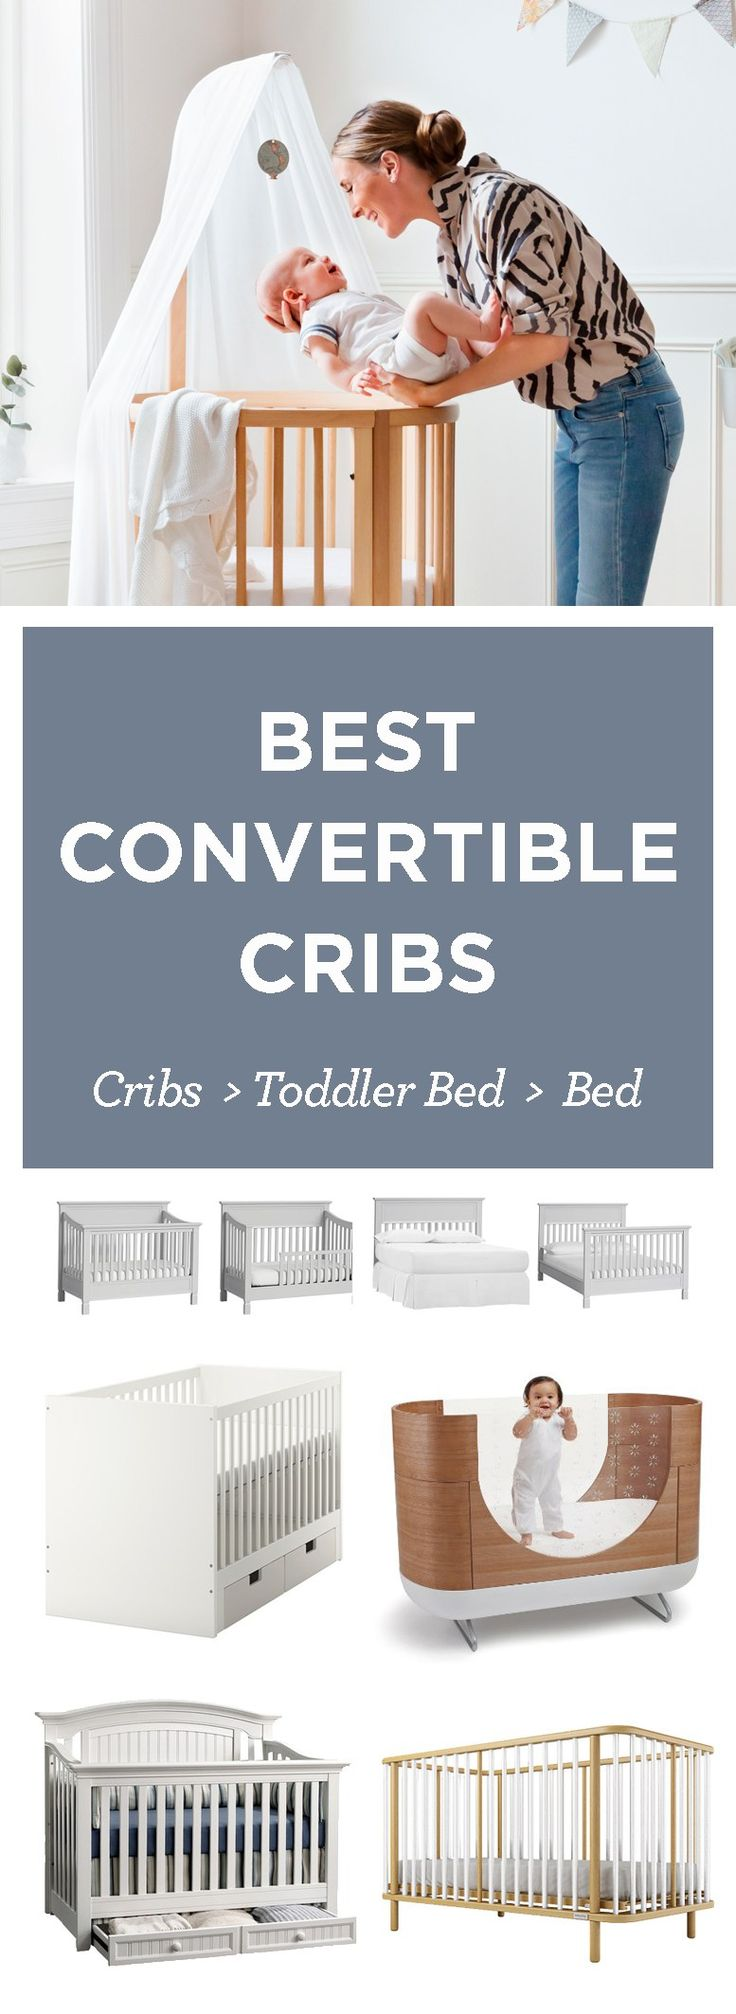 The best convertible baby cribs that convert to toddler beds so you get years of use out of it. From wood to white. Budget to splurge.